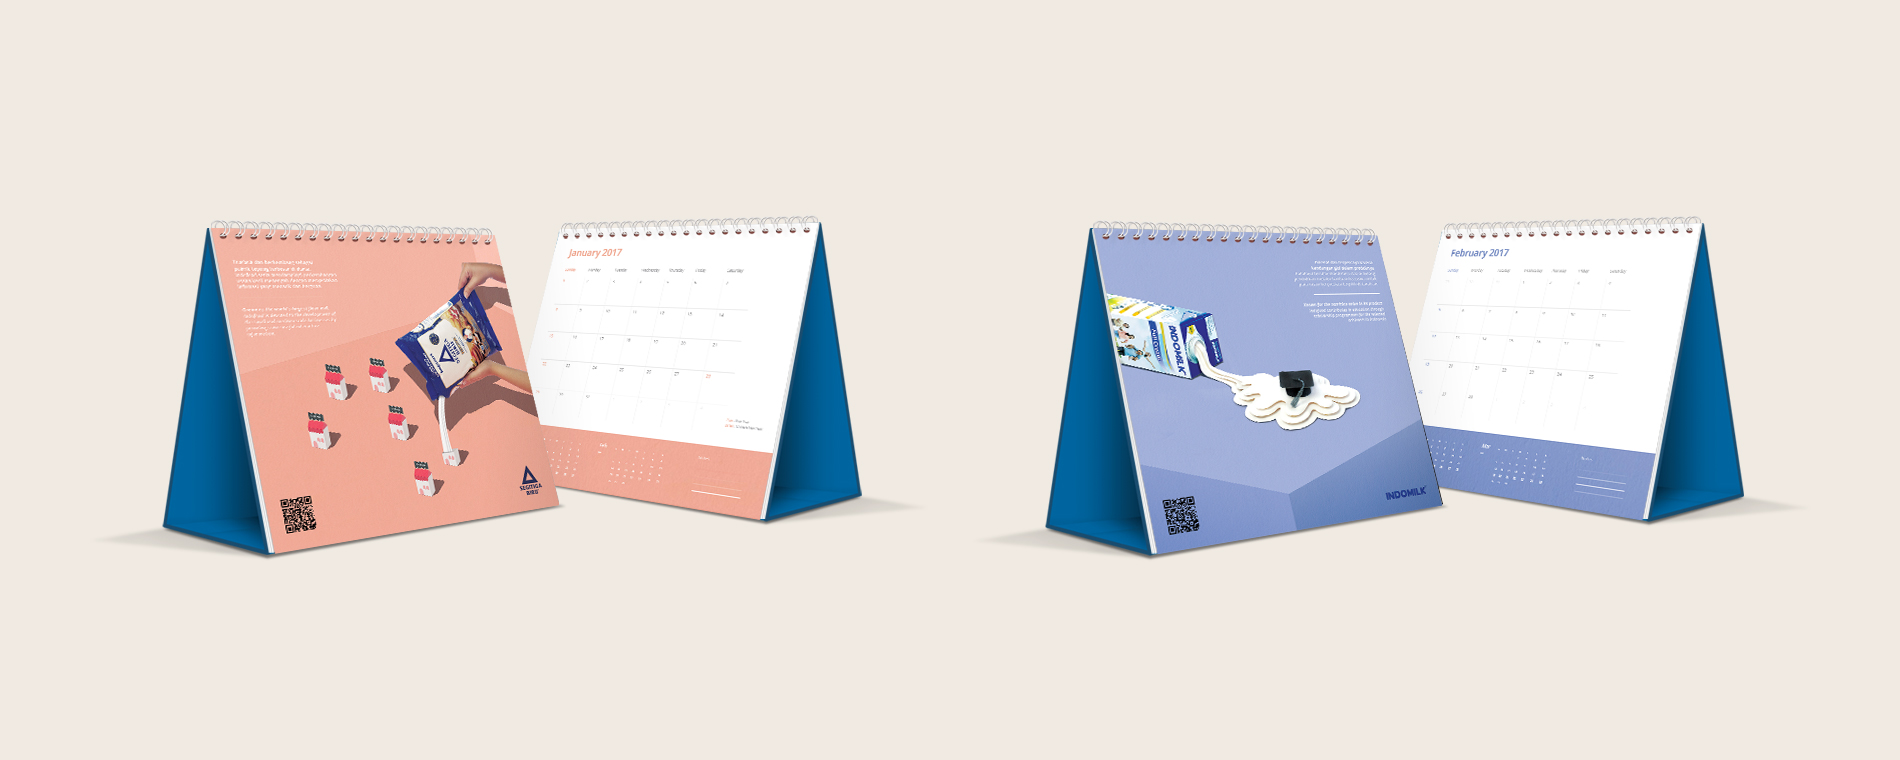 Calendar Typography Tips : Tips for an effective calendar design kamarupa